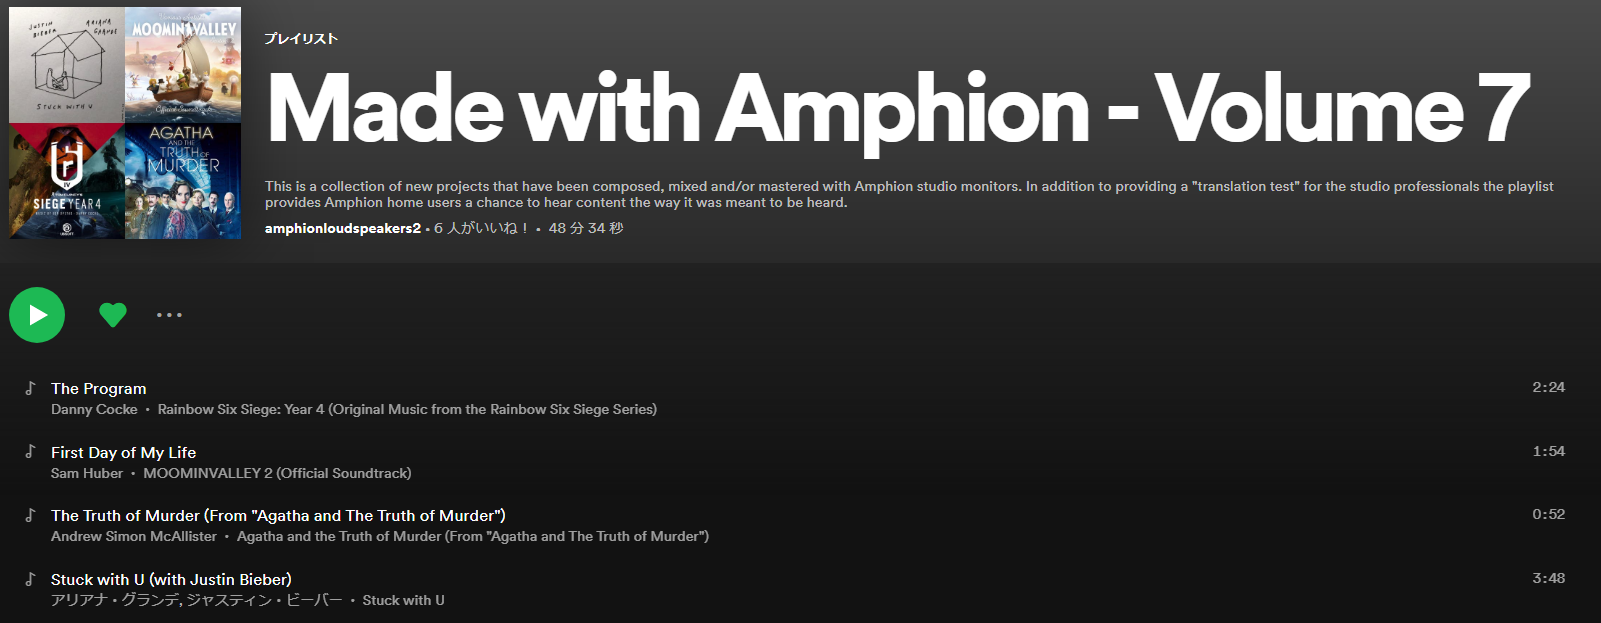 Made with Amphion - Volume7公開